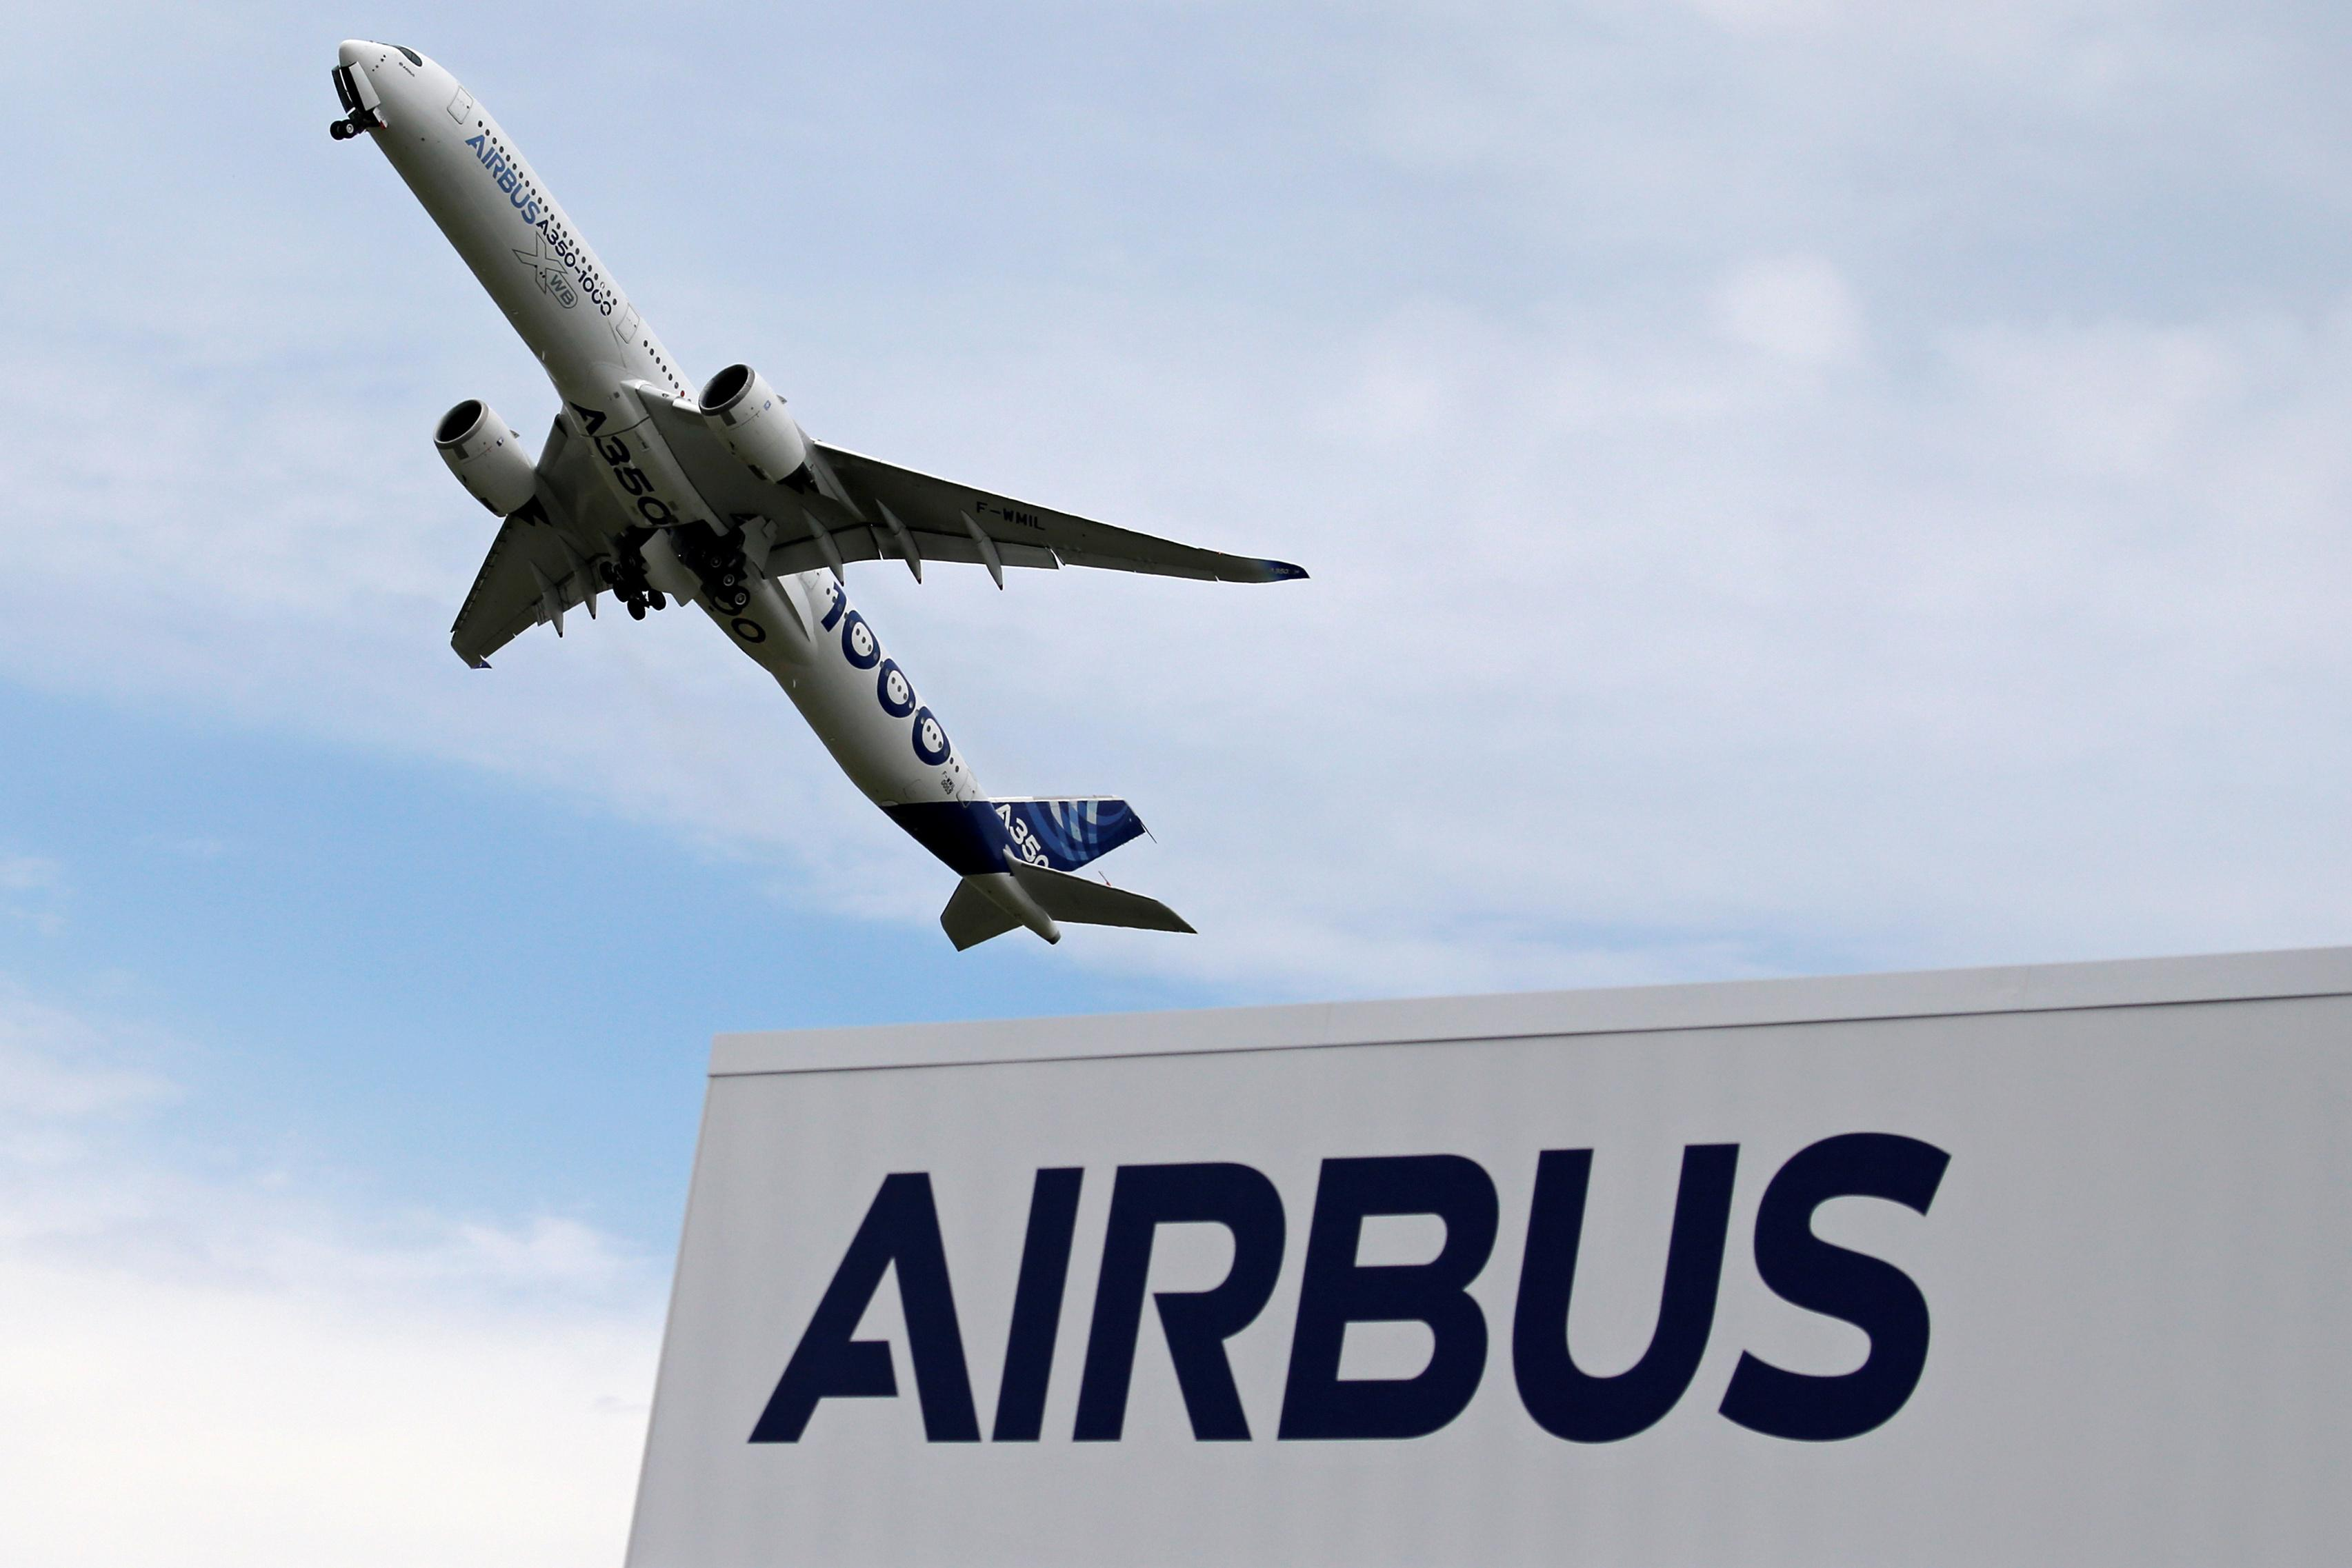 Airbus deliveries climb in H1, sources say, leaving production challenge